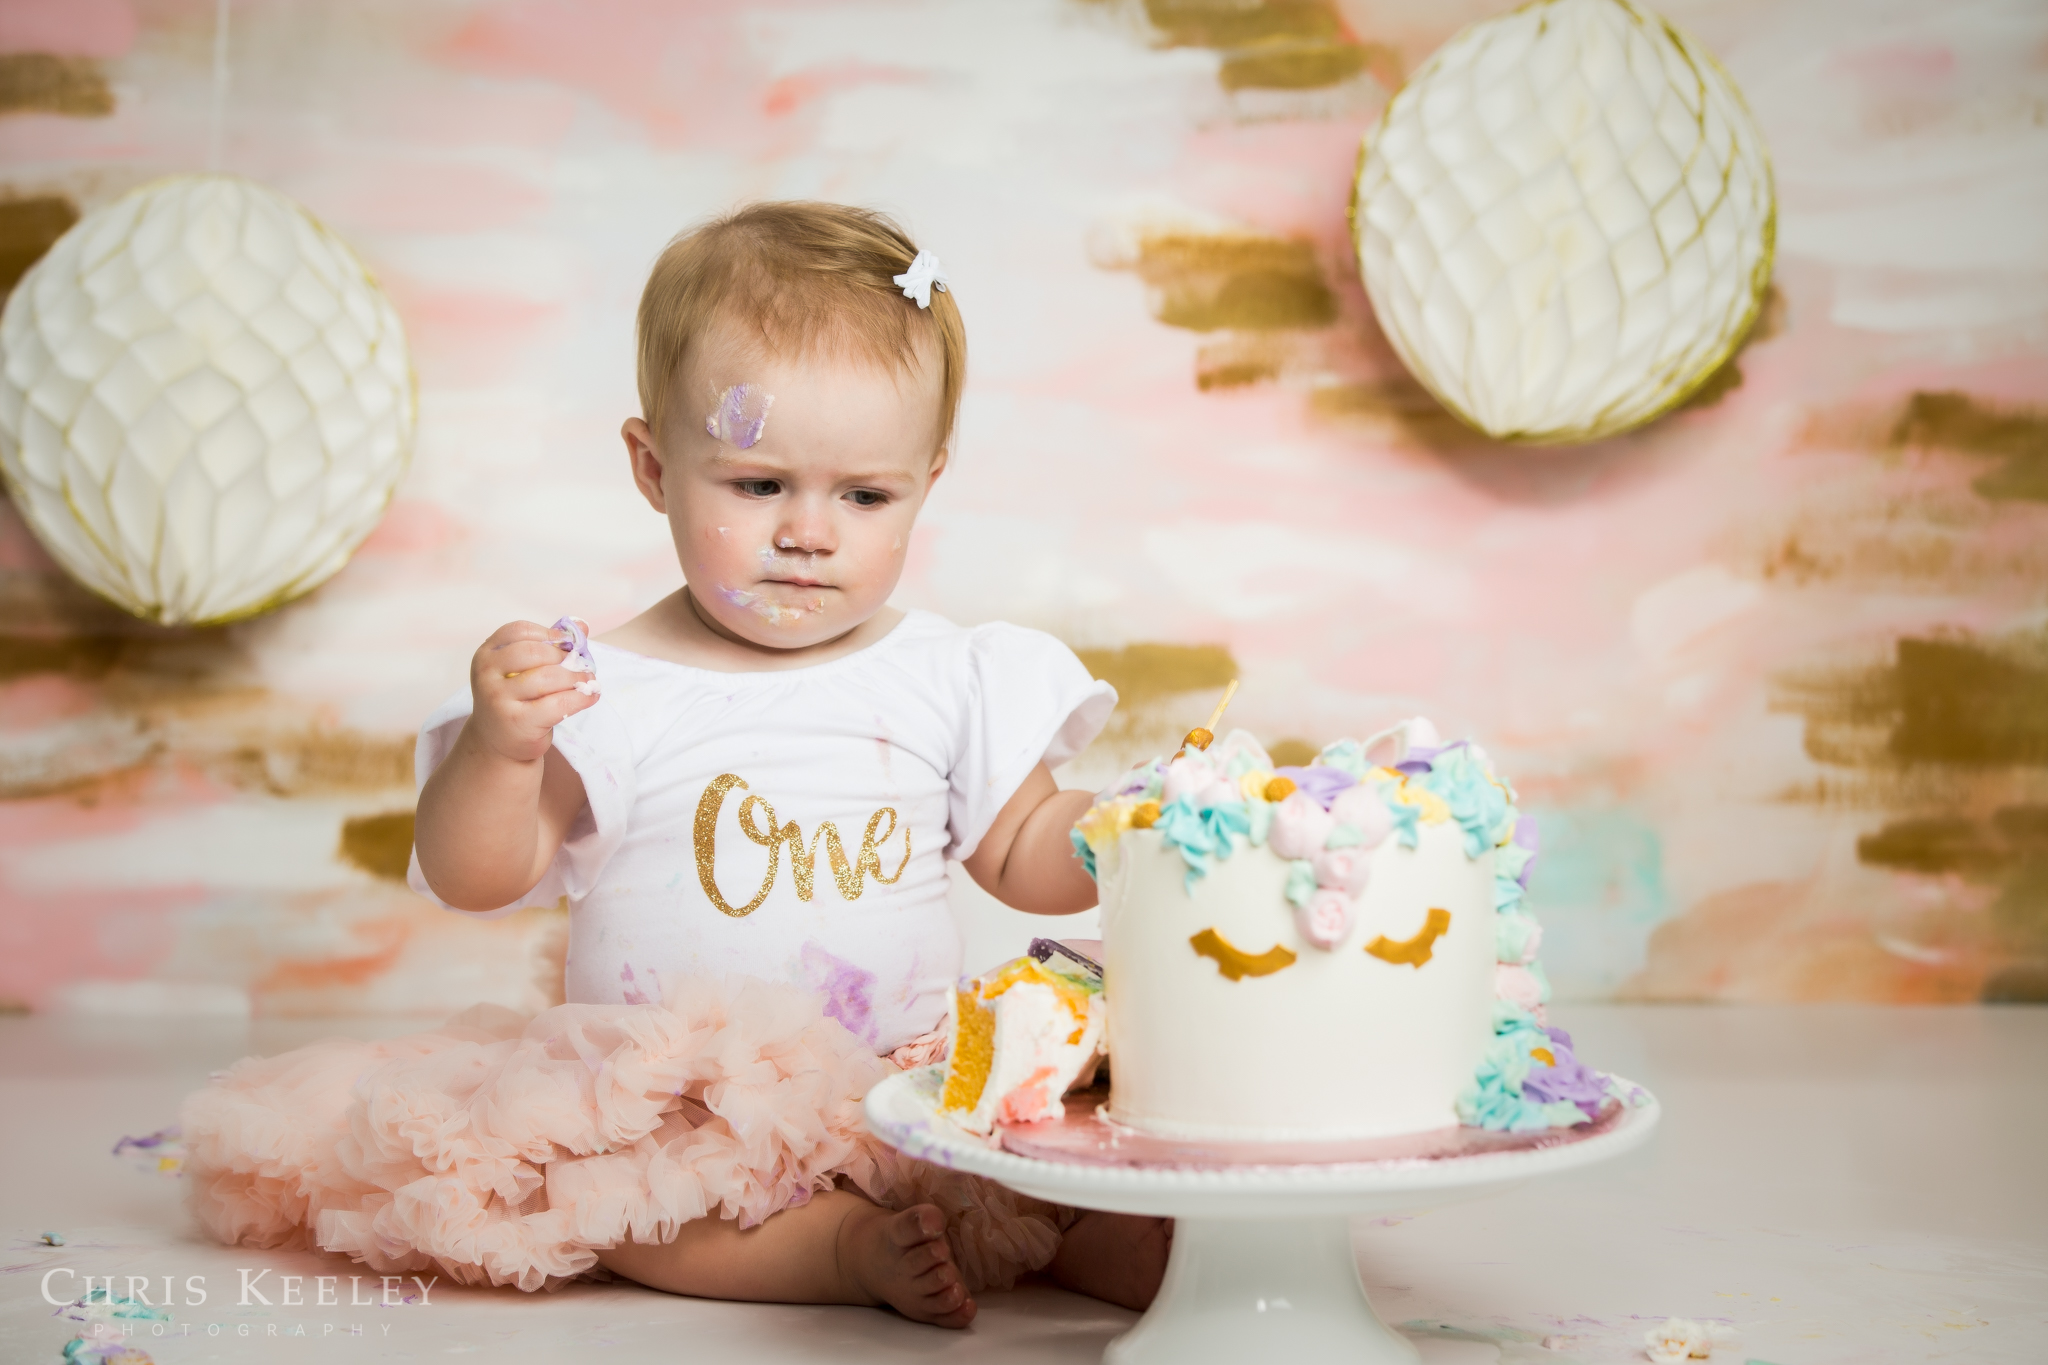 gwendolyn-one-year-cake-smash-dover-new-hampshire-photographer-14.jpg